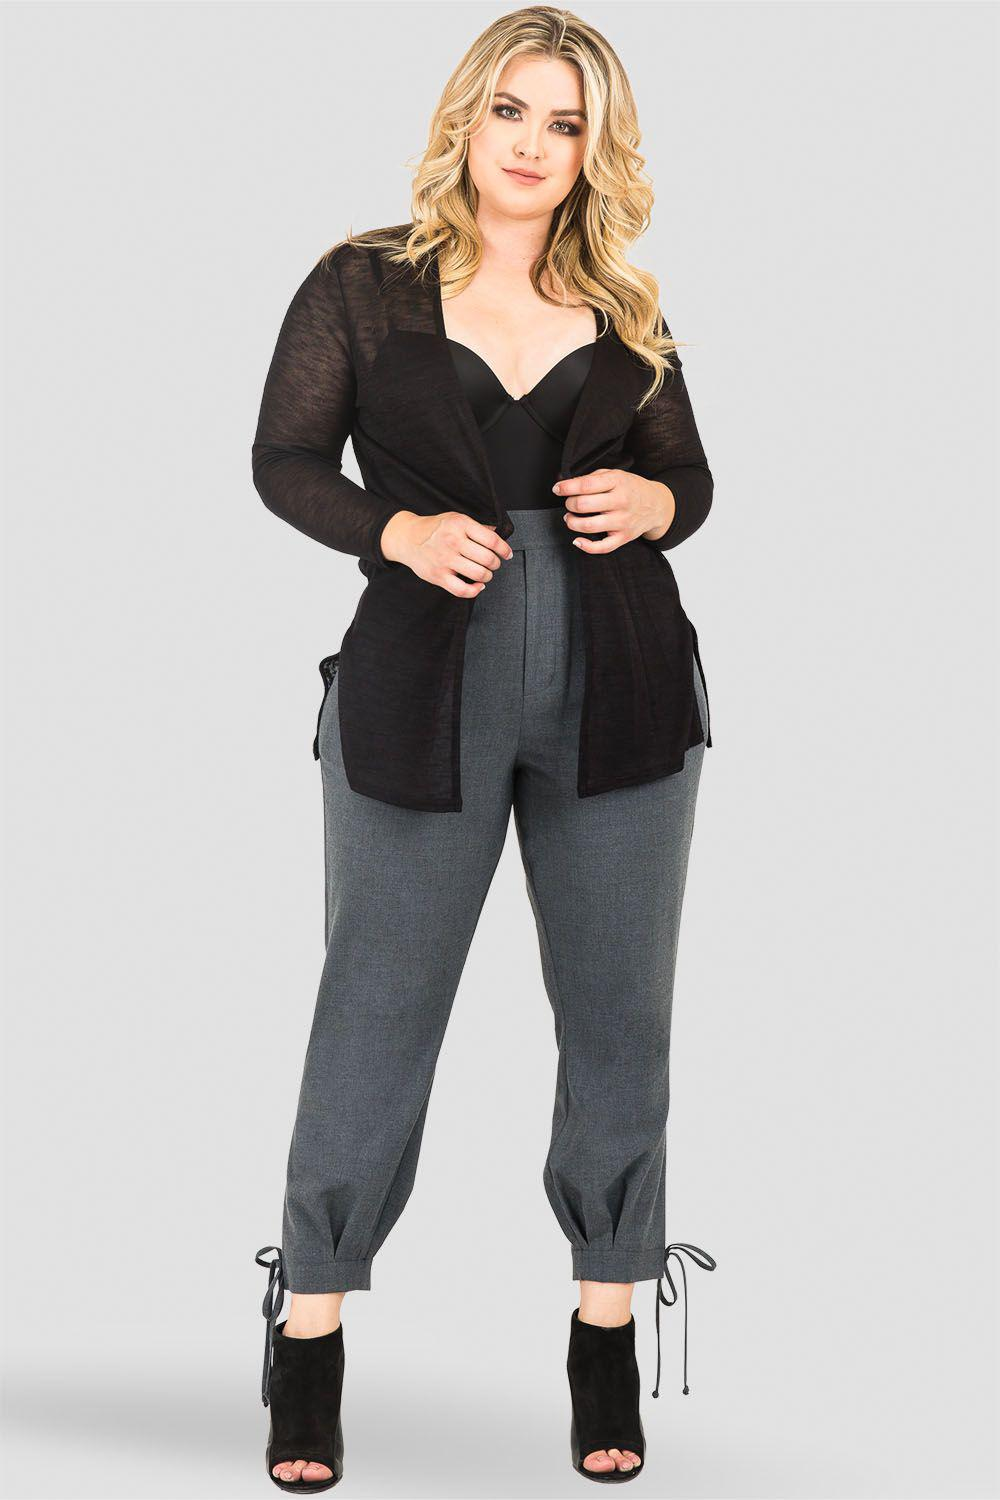 Plus Size Robie Double-Button High Waist Ankle Tie Cuff Trousers - Charcoal Gray